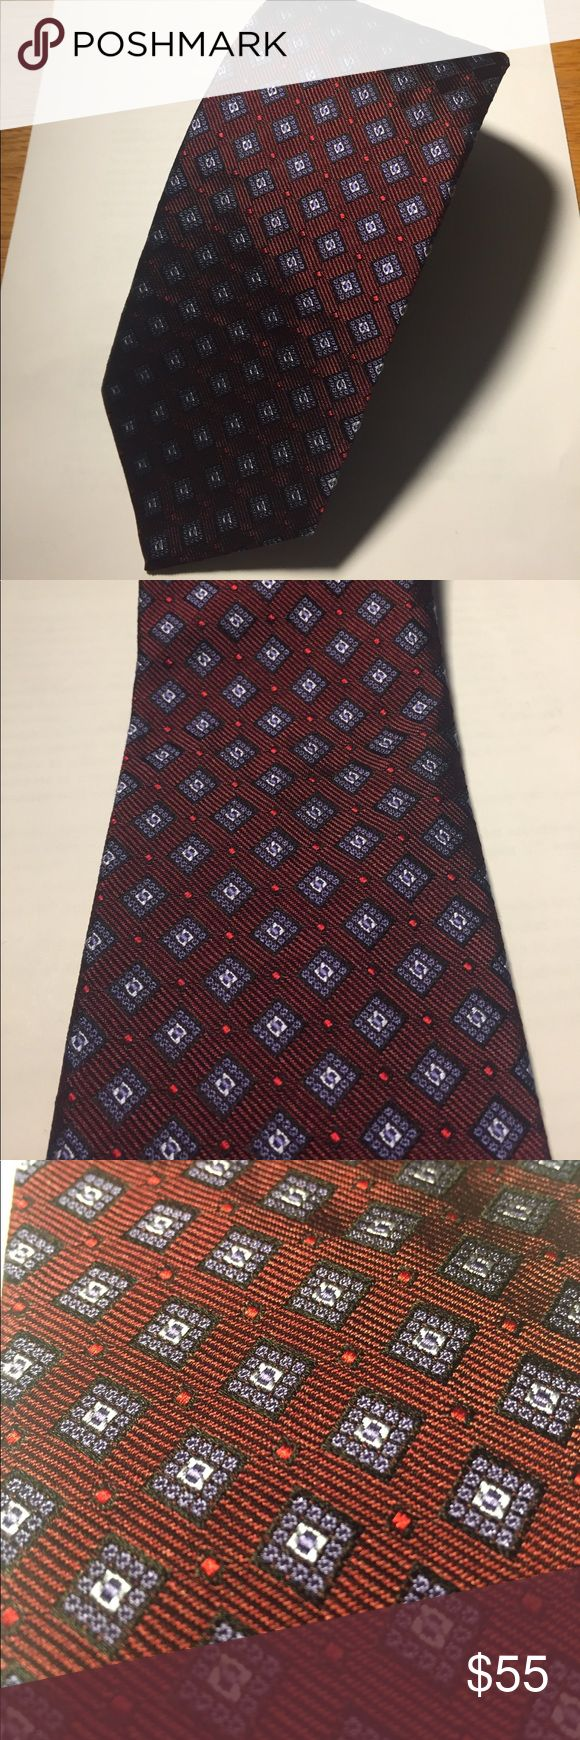 NWT Brooks Brothers tie maroon and blue beautiful! Brand new With Tags Brooks Brothers tie. Beautiful maroon color with blue accenting! Incredible feel and an outstanding tie. Perfect for any occasion!!! 100% silk! Brooks Brothers Accessories Ties